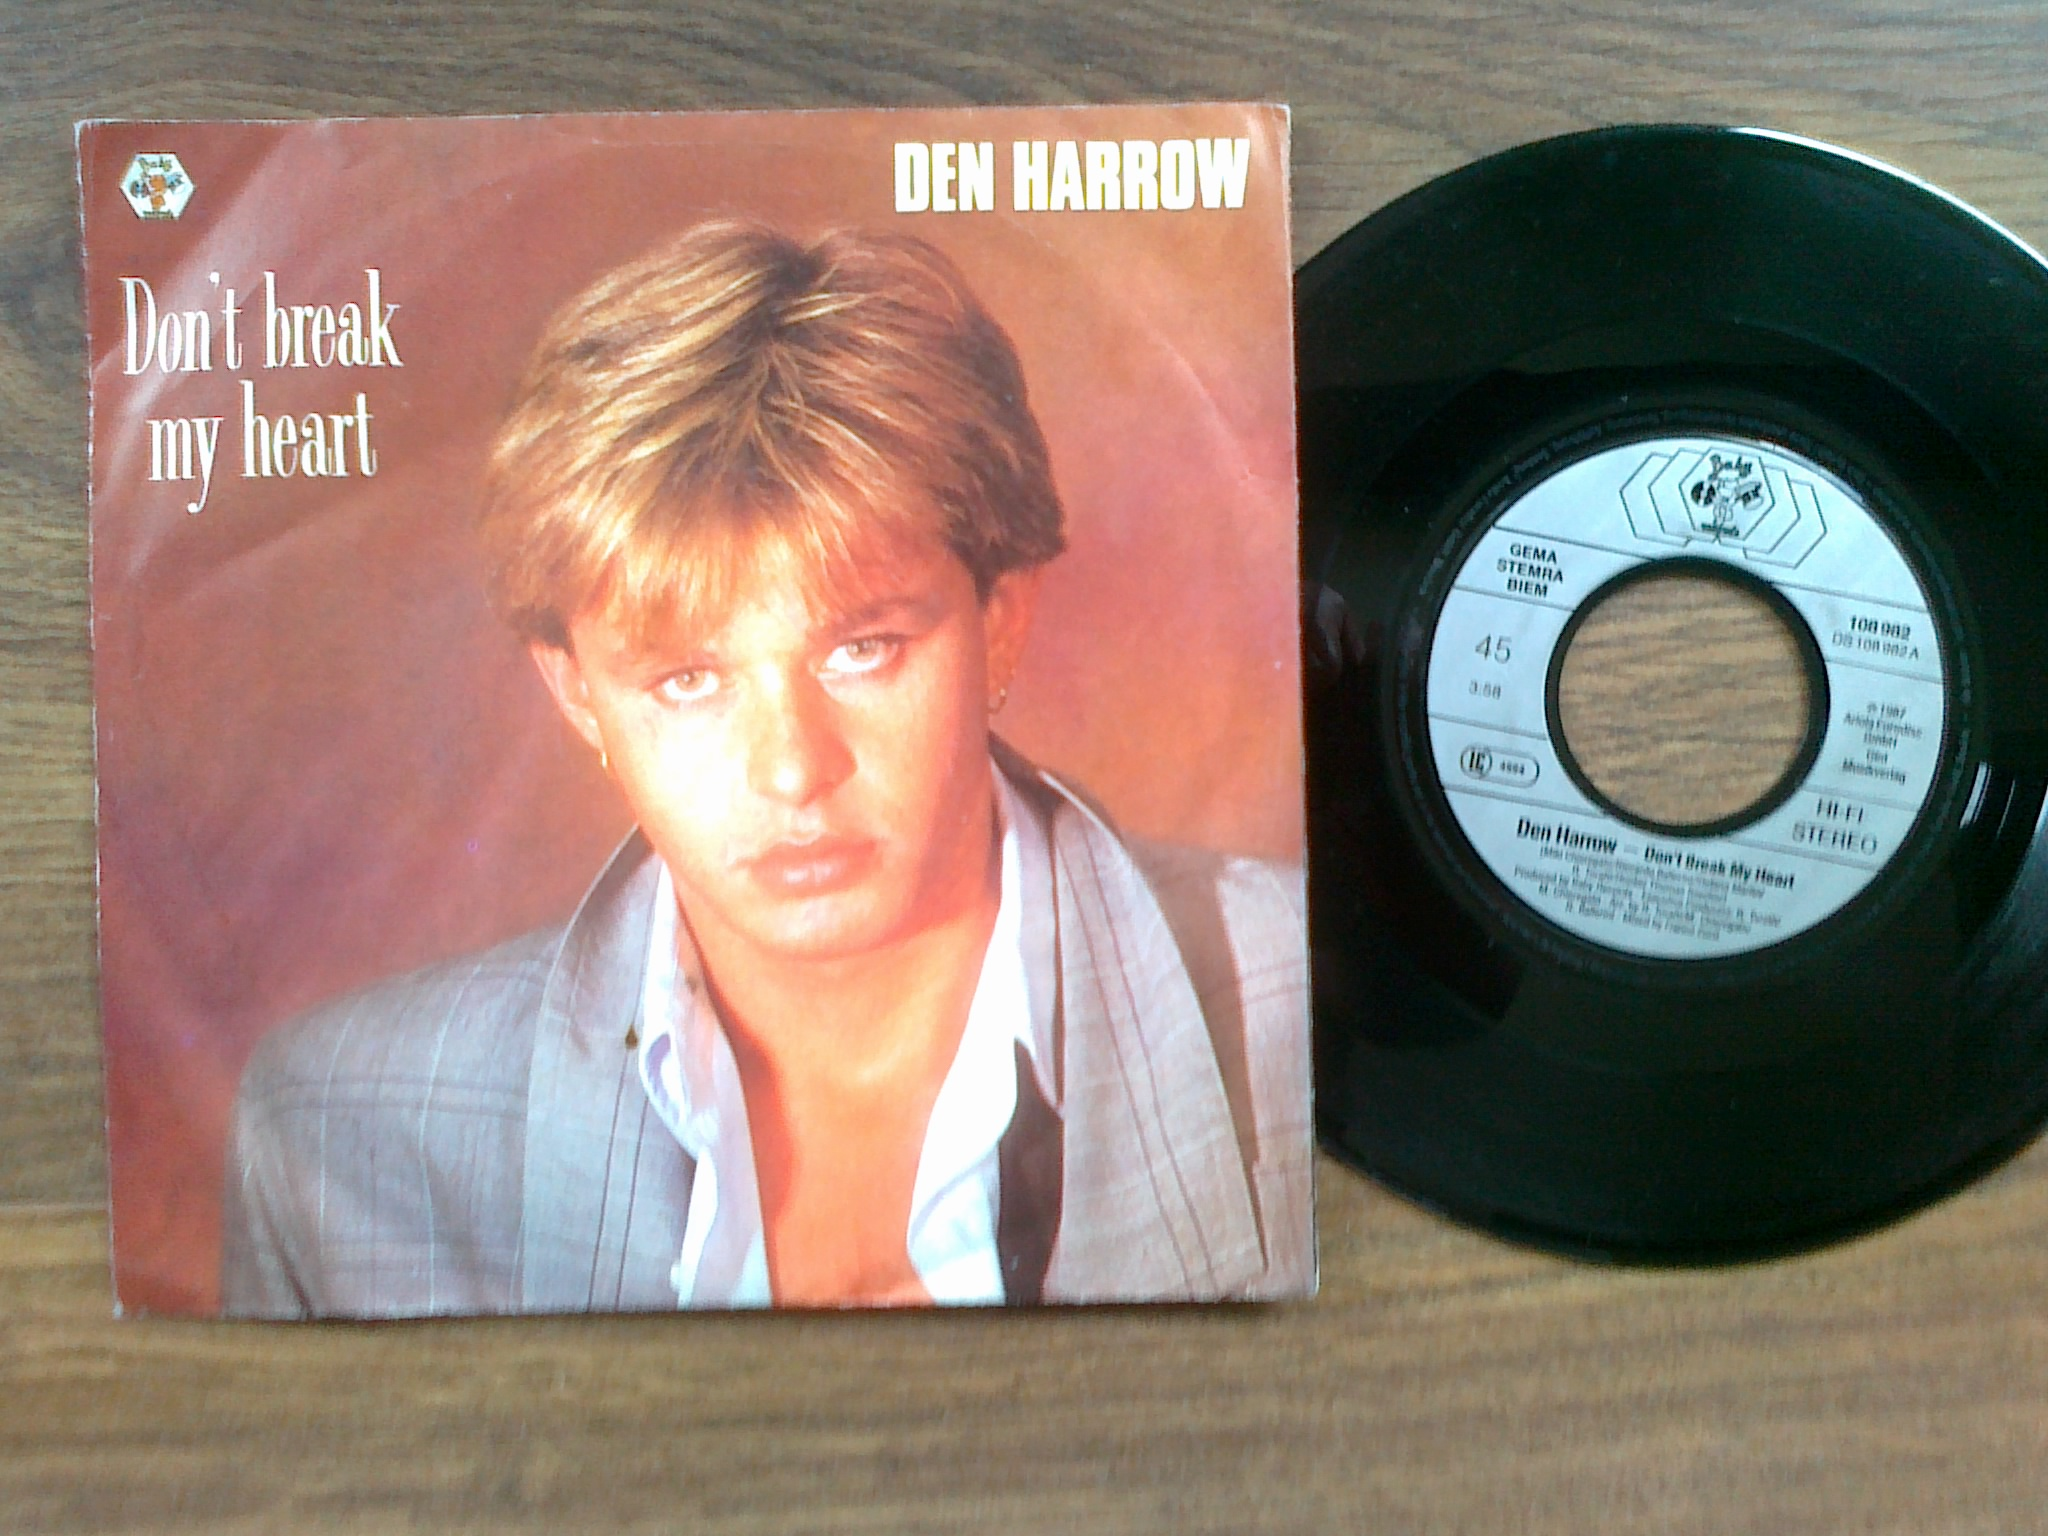 Den Harrow - Don't break my heart 7'single